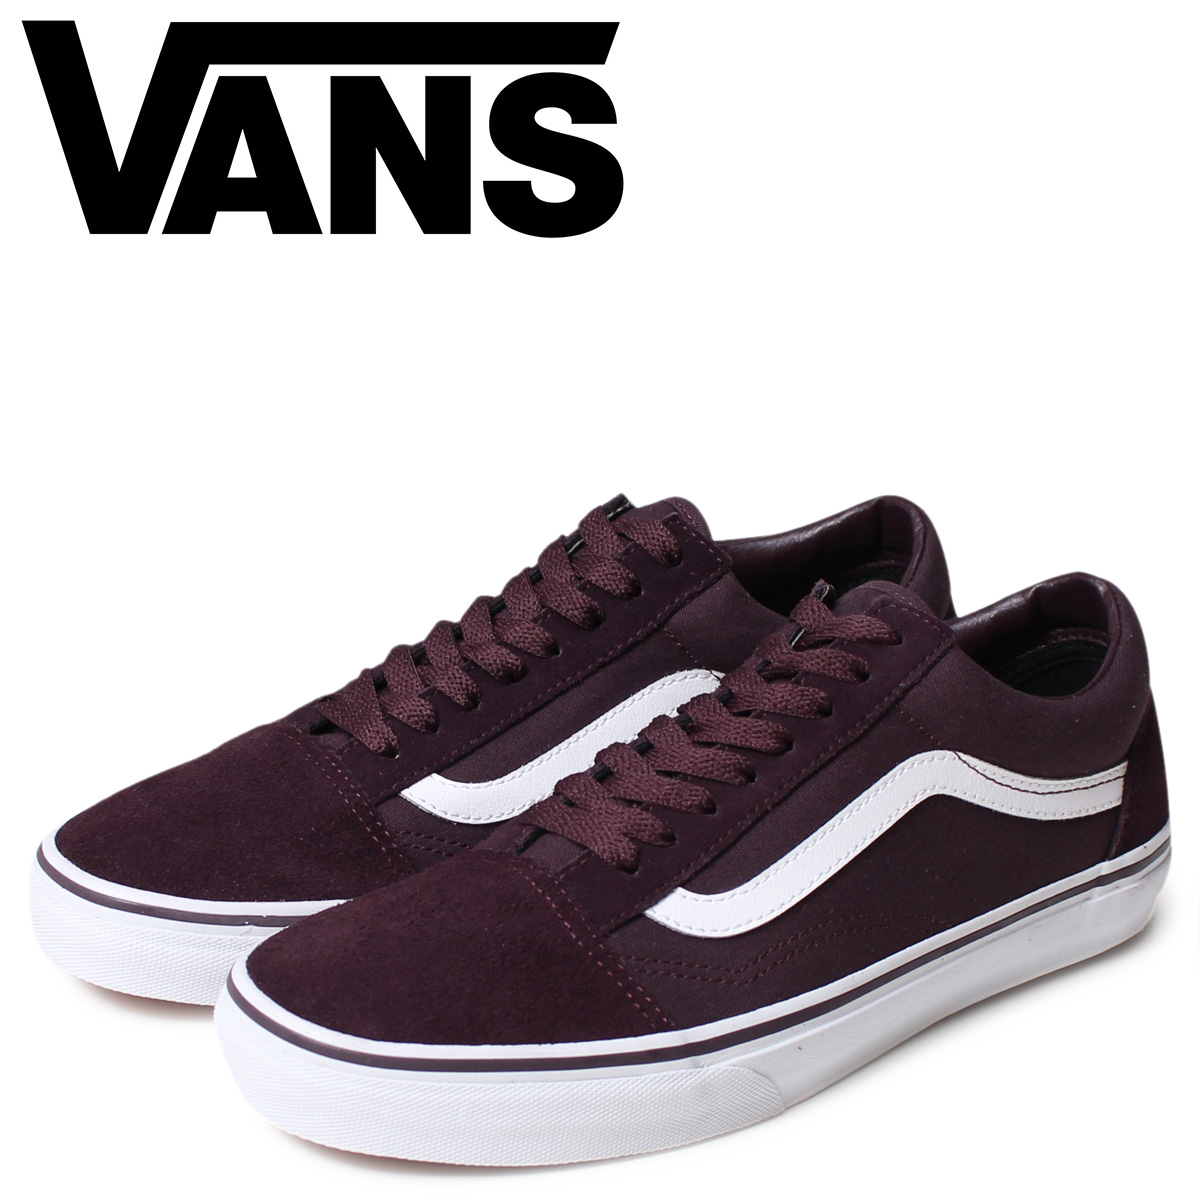 6bd9471de136 vans old skool iron brown   Come and stroll!